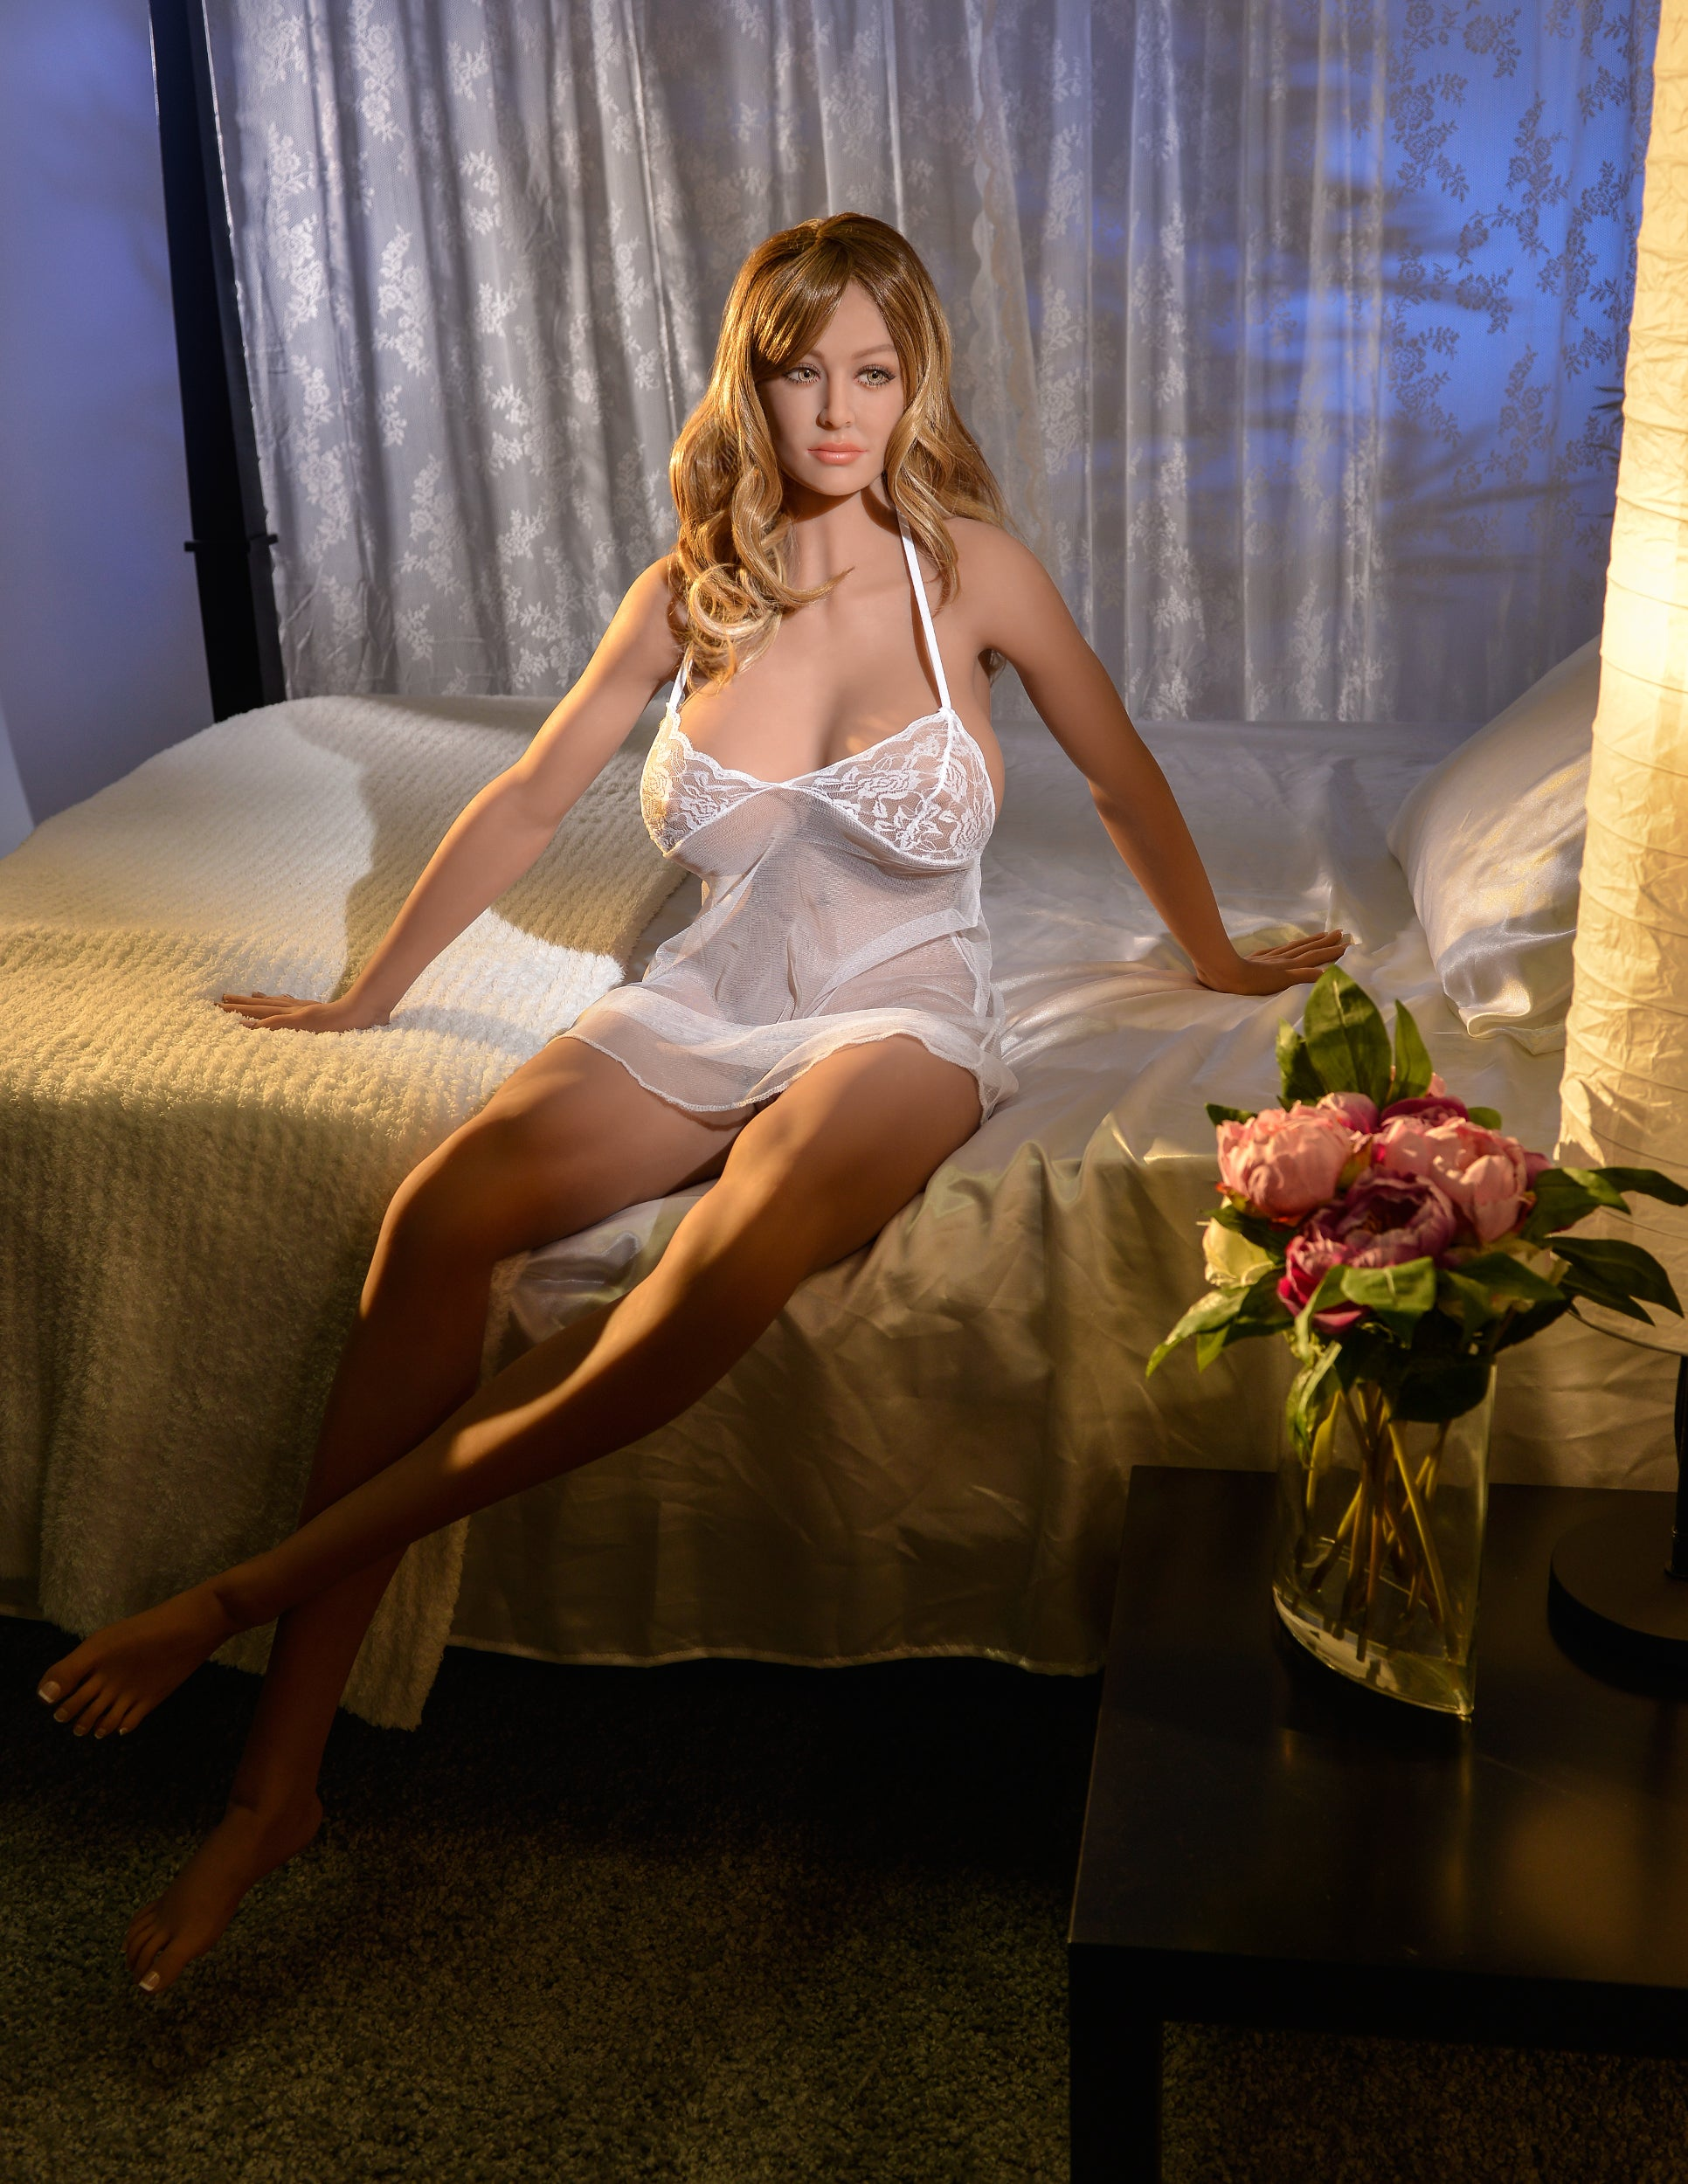 Ultimate Fantasy Dolls - Bianca sitting on a bed wearing a white negligee